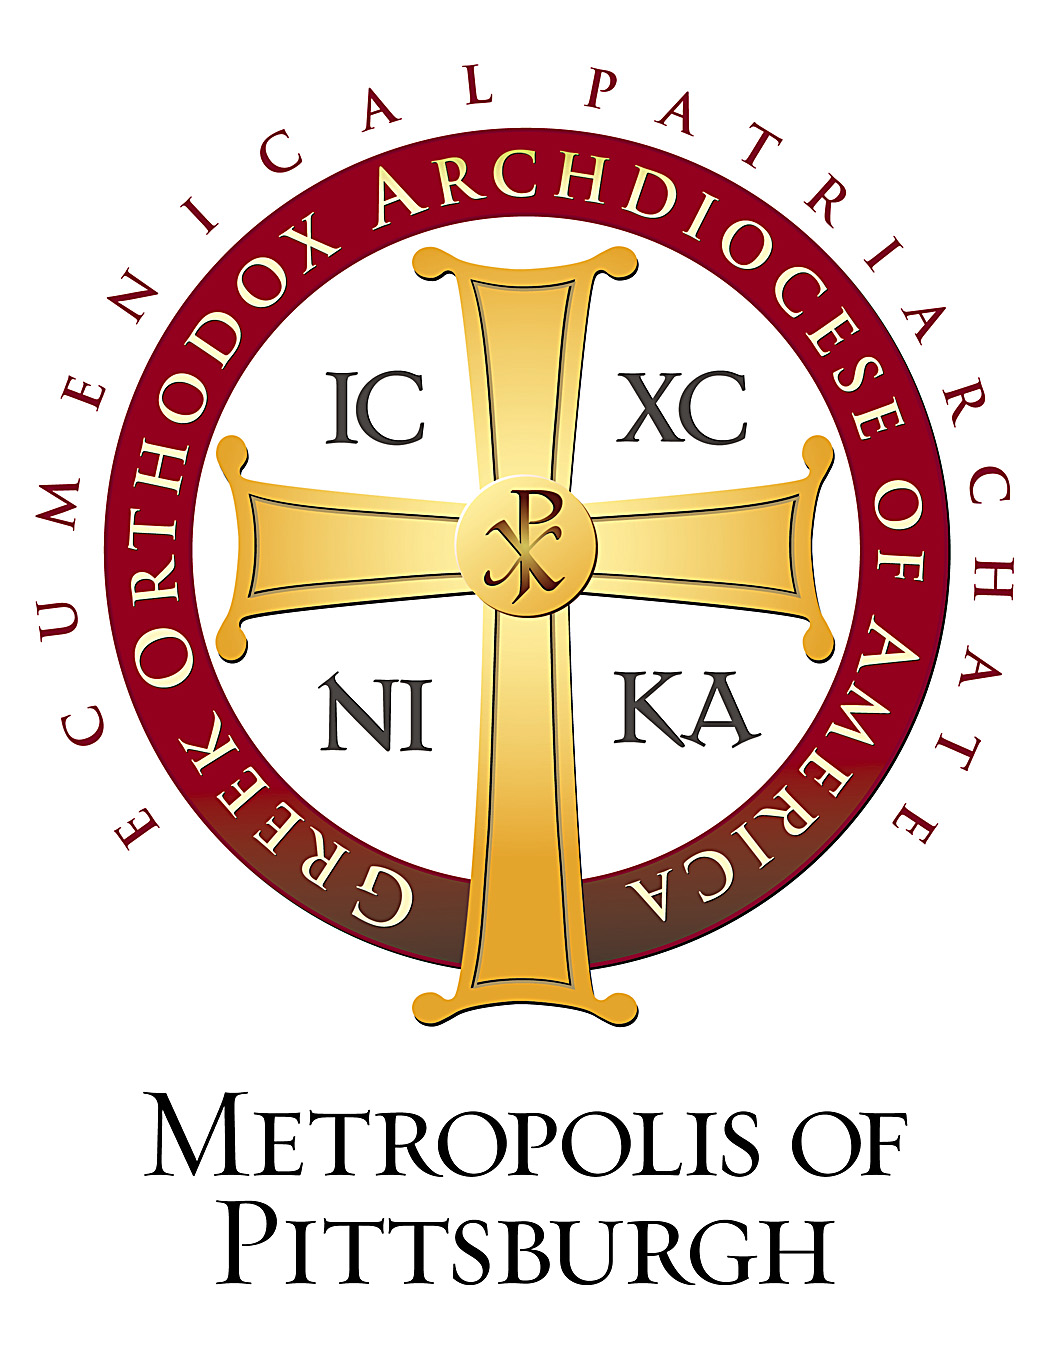 Metropolitan's Pastoral Letter and Directives regarding Pandemic